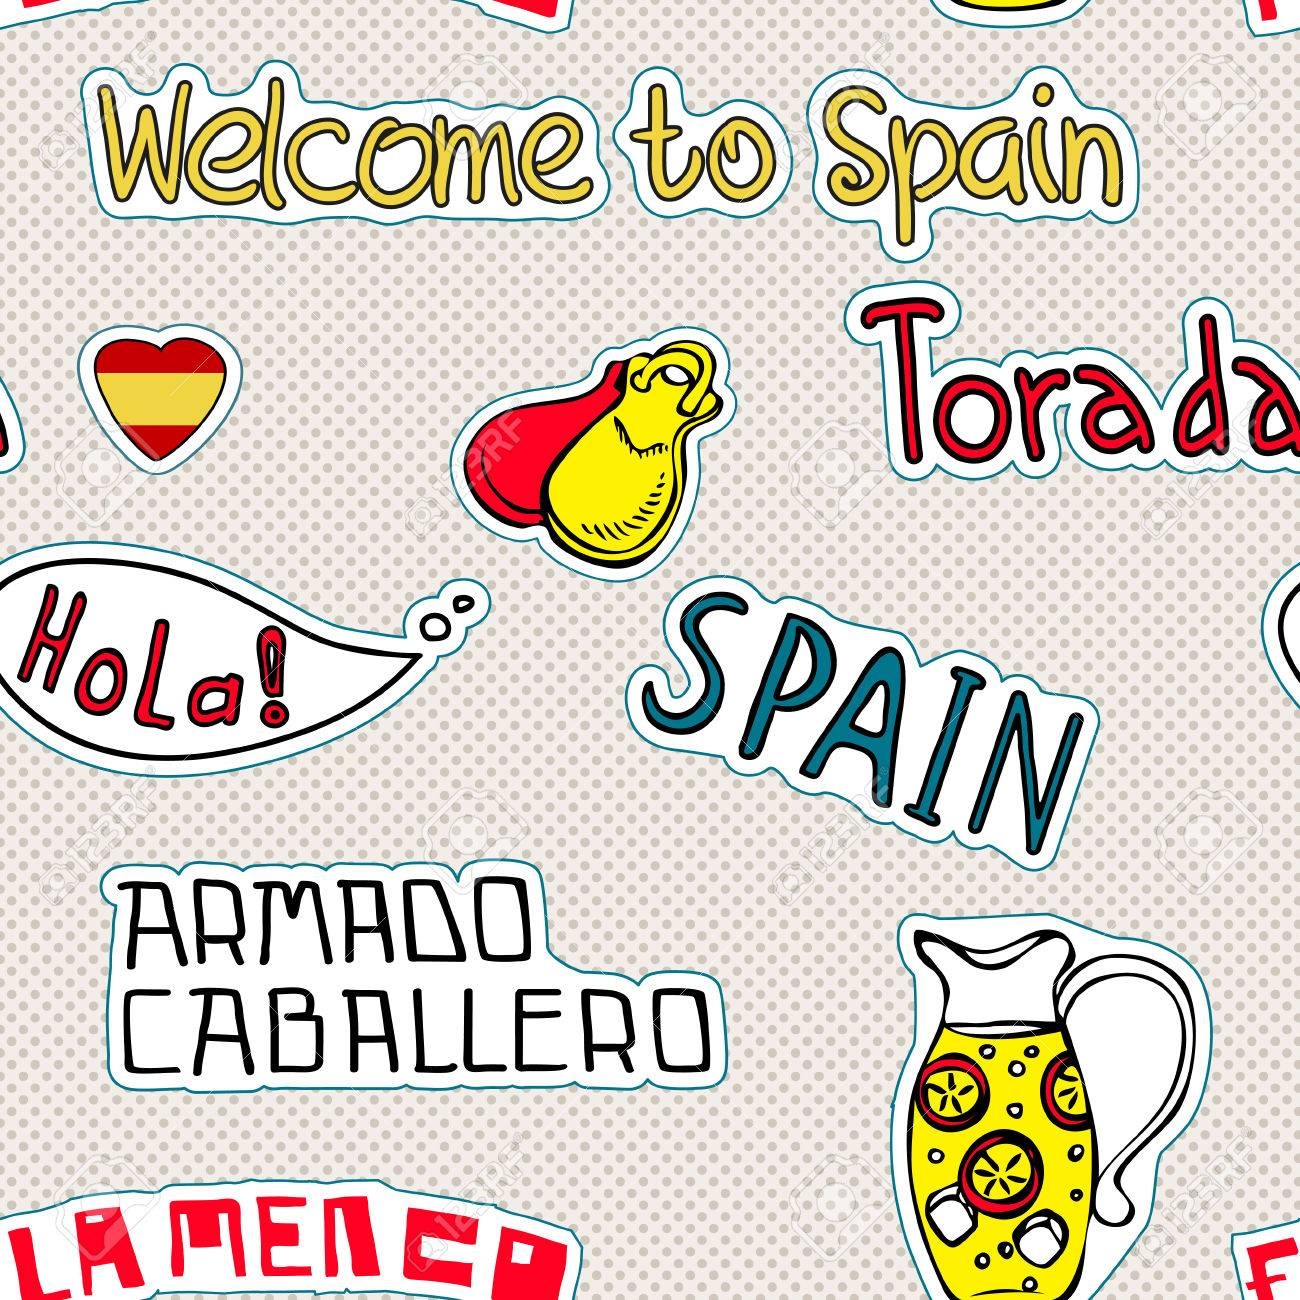 Travel spain pattern with doodles symbols of spain royalty free travel spain pattern with doodles symbols of spain stock vector 27532488 buycottarizona Images